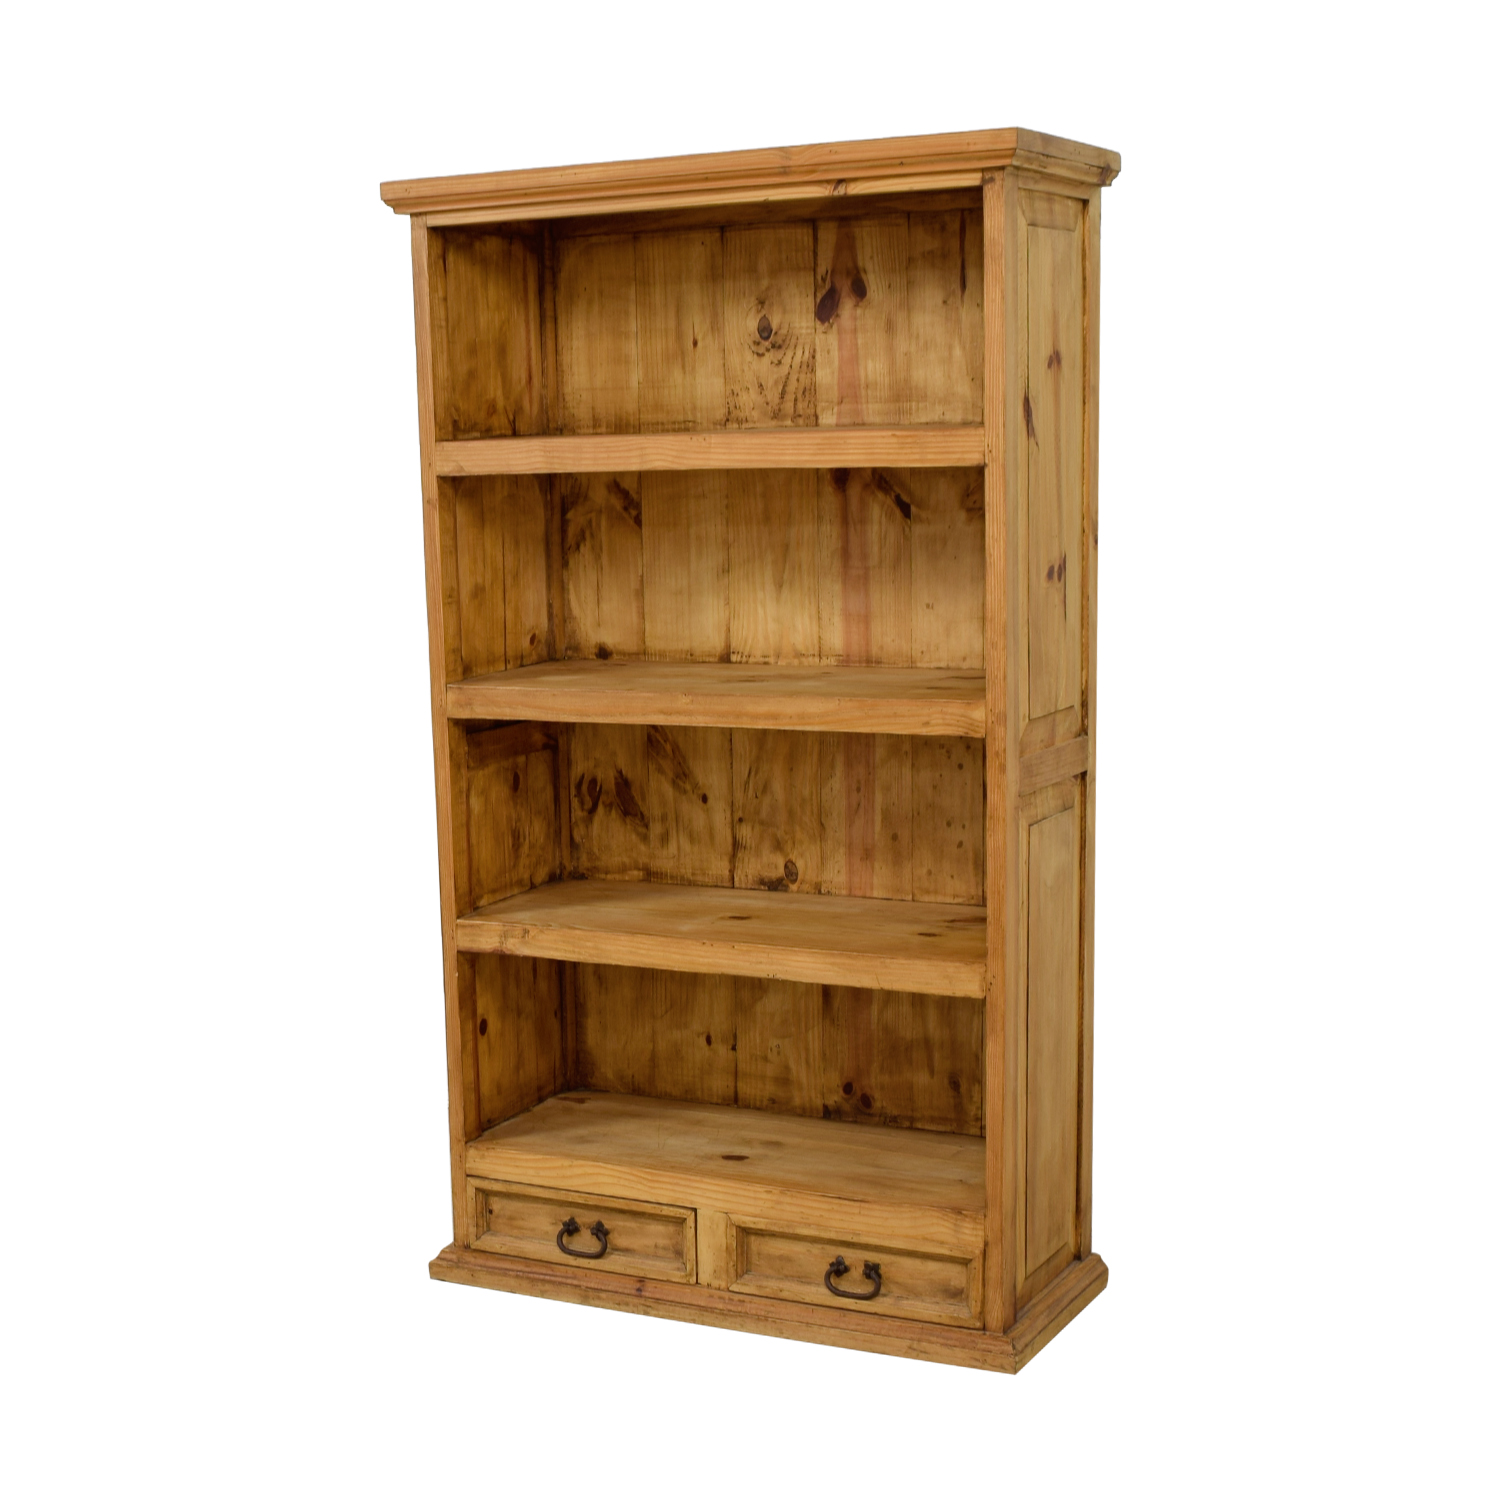 Natural Rustic Wood Bookshelf with Two-Drawers dimensions